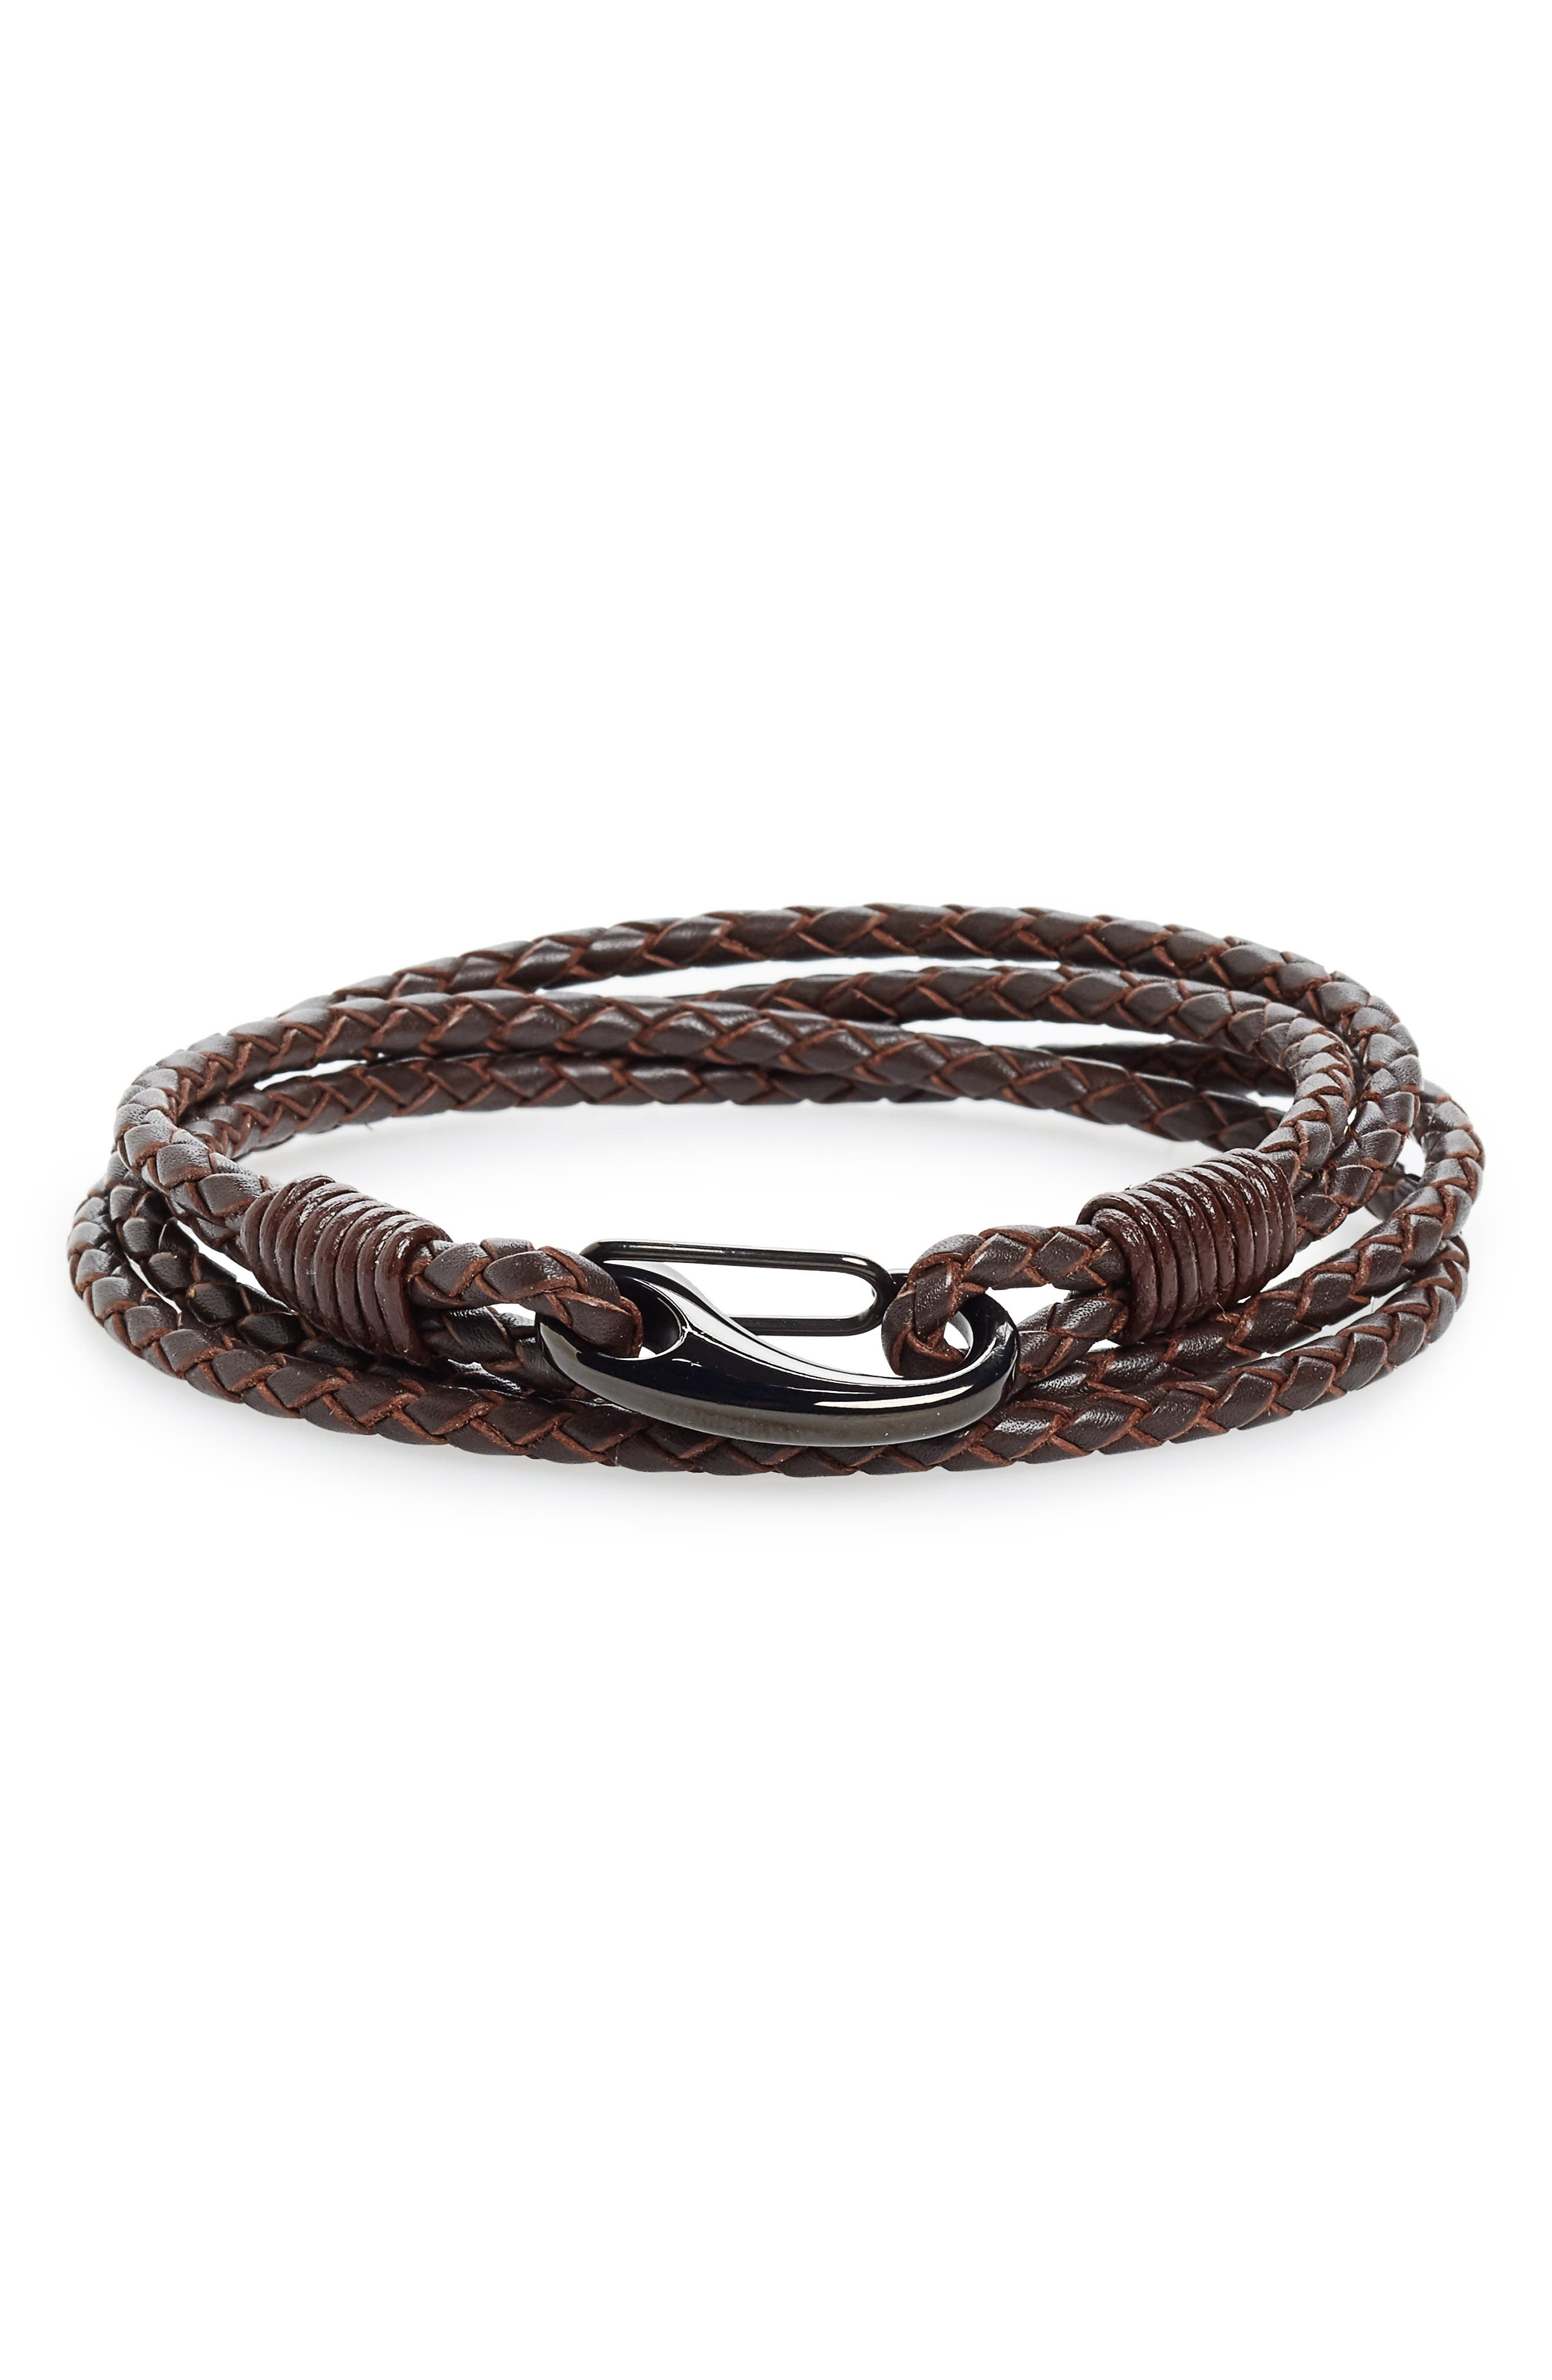 Braided Leather Wrap Bracelet,                         Main,                         color, 200